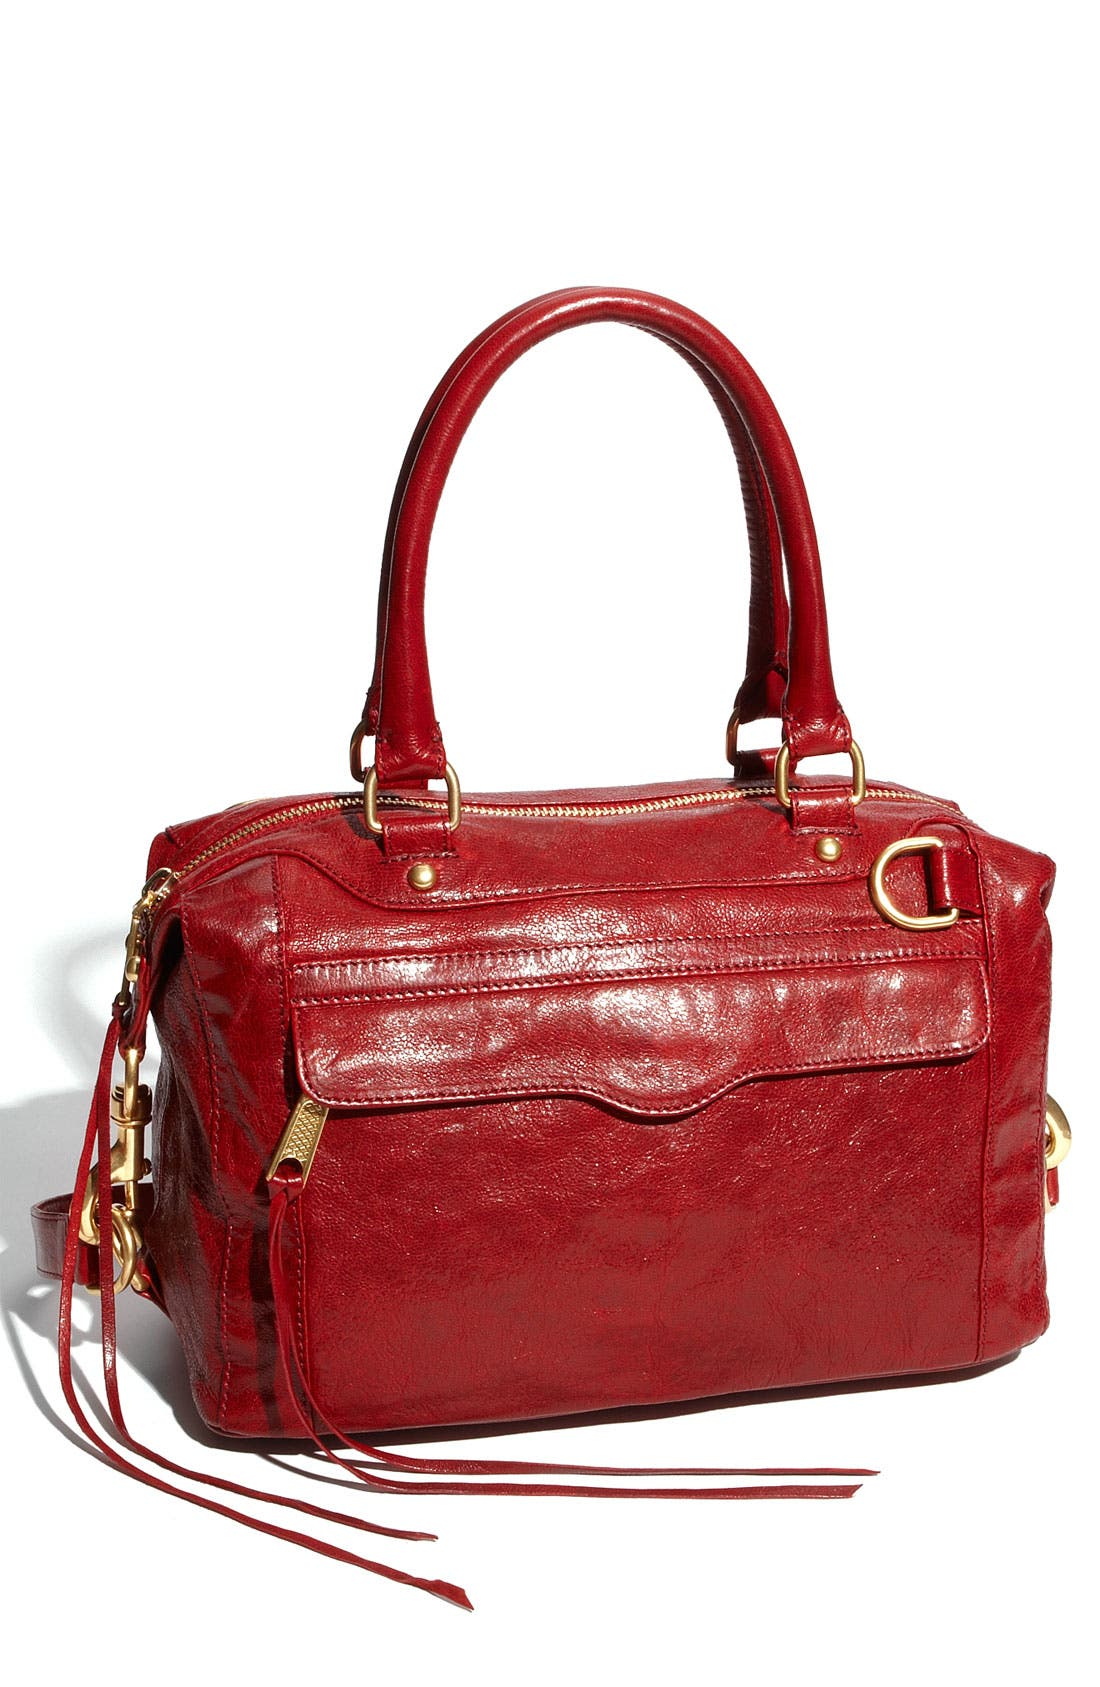 Alternate Image 1 Selected - Rebecca Minkoff 'Classics Mini MAB' Satchel